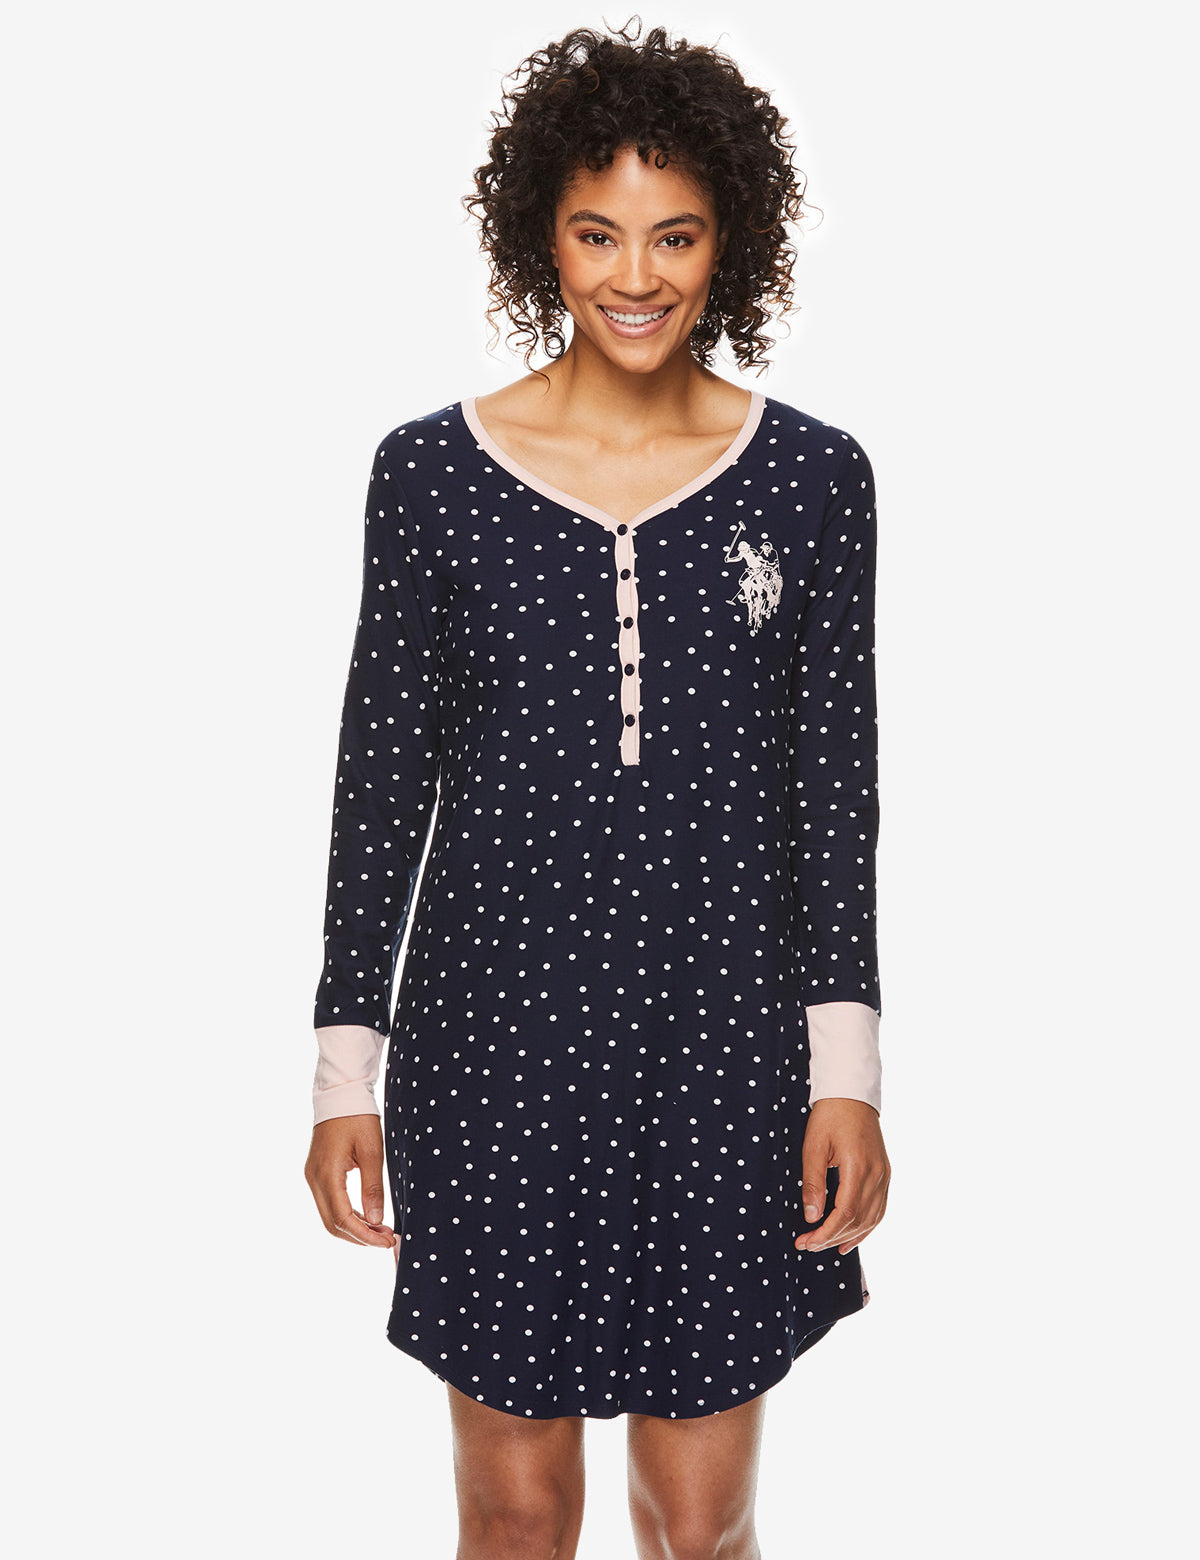 LONG SLEEVED SLEEPSHIRT - U.S. Polo Assn.